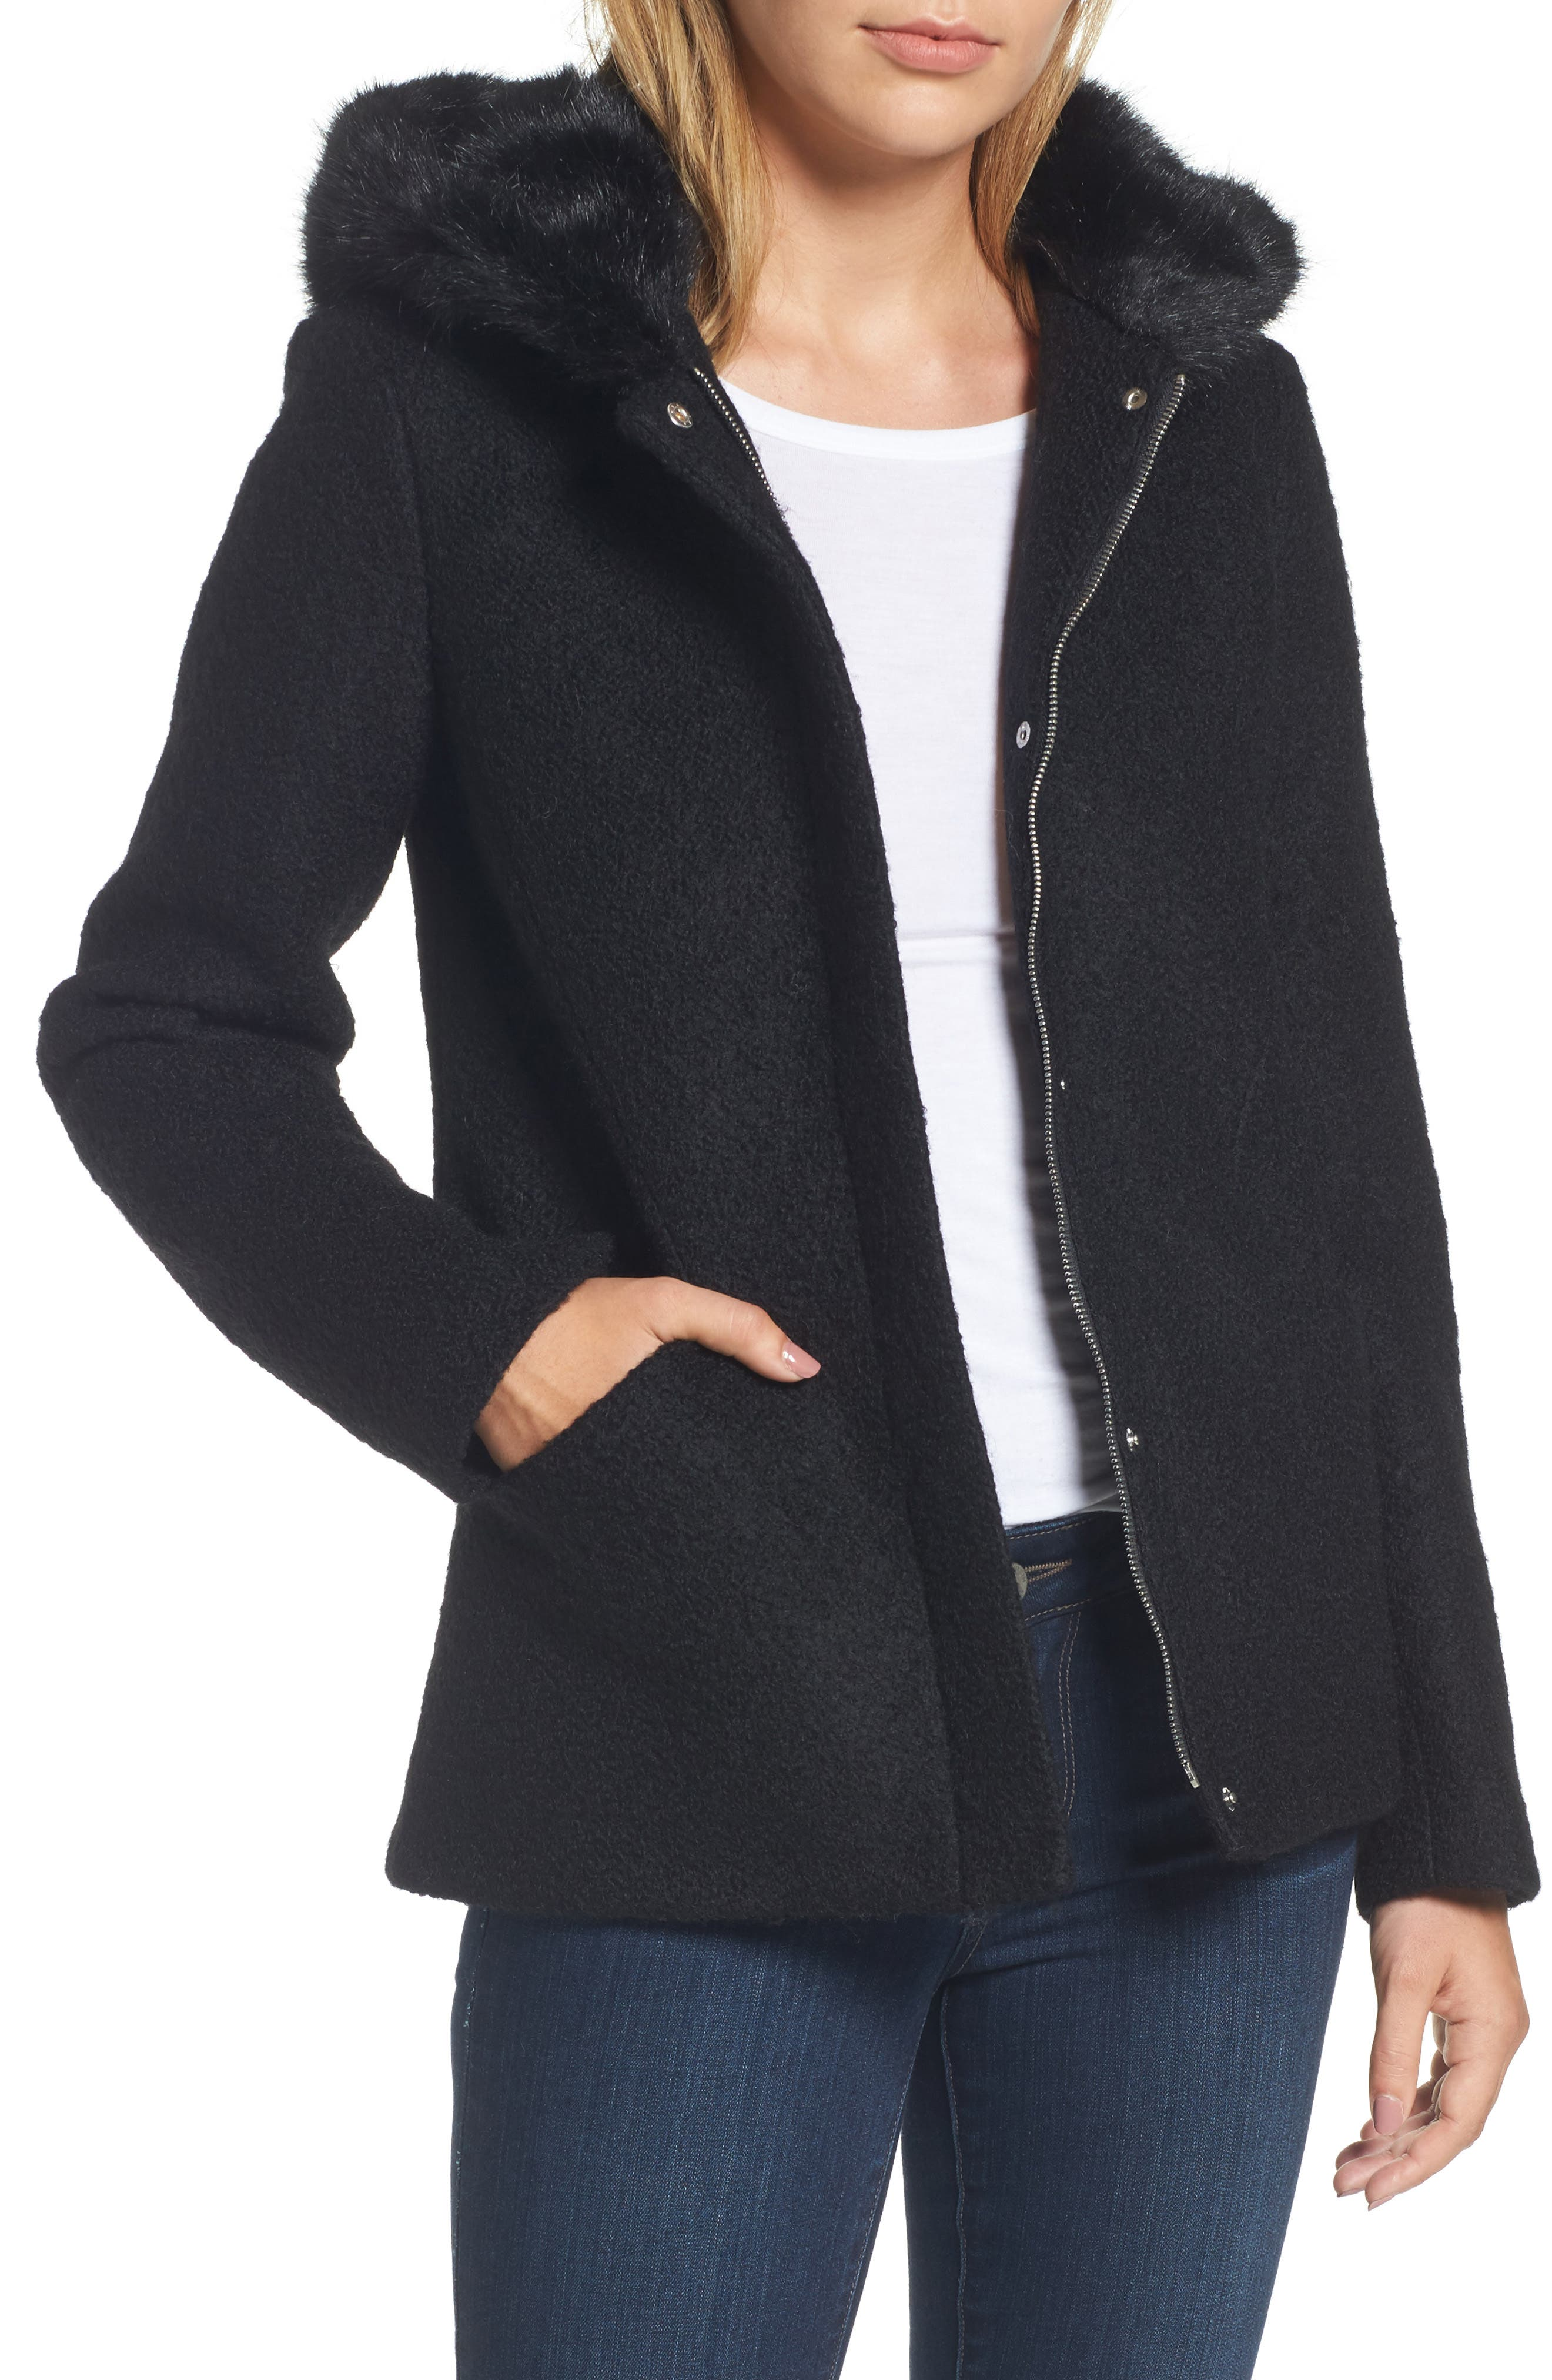 Alternate Image 1 Selected - Laundry by Shelli Segal Hooded Wool Blend Bouclé Jacket with Faux Fur Trim